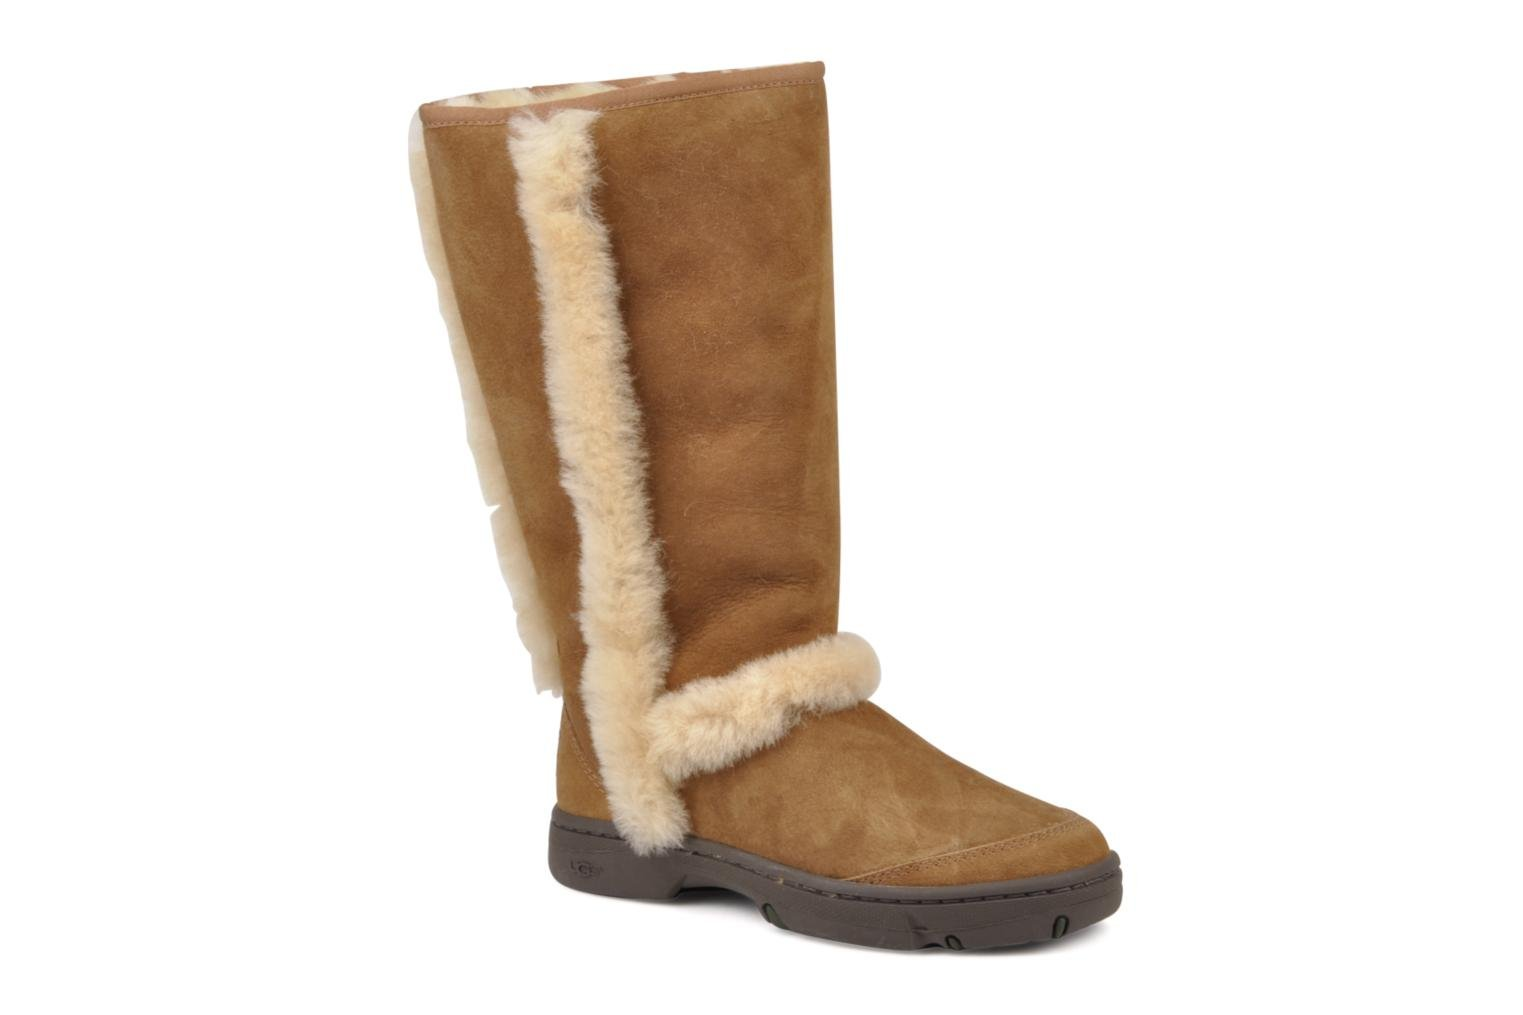 d8a5183f7b5 Ugg Australia Sunburst Tall Boots - cheap watches mgc-gas.com